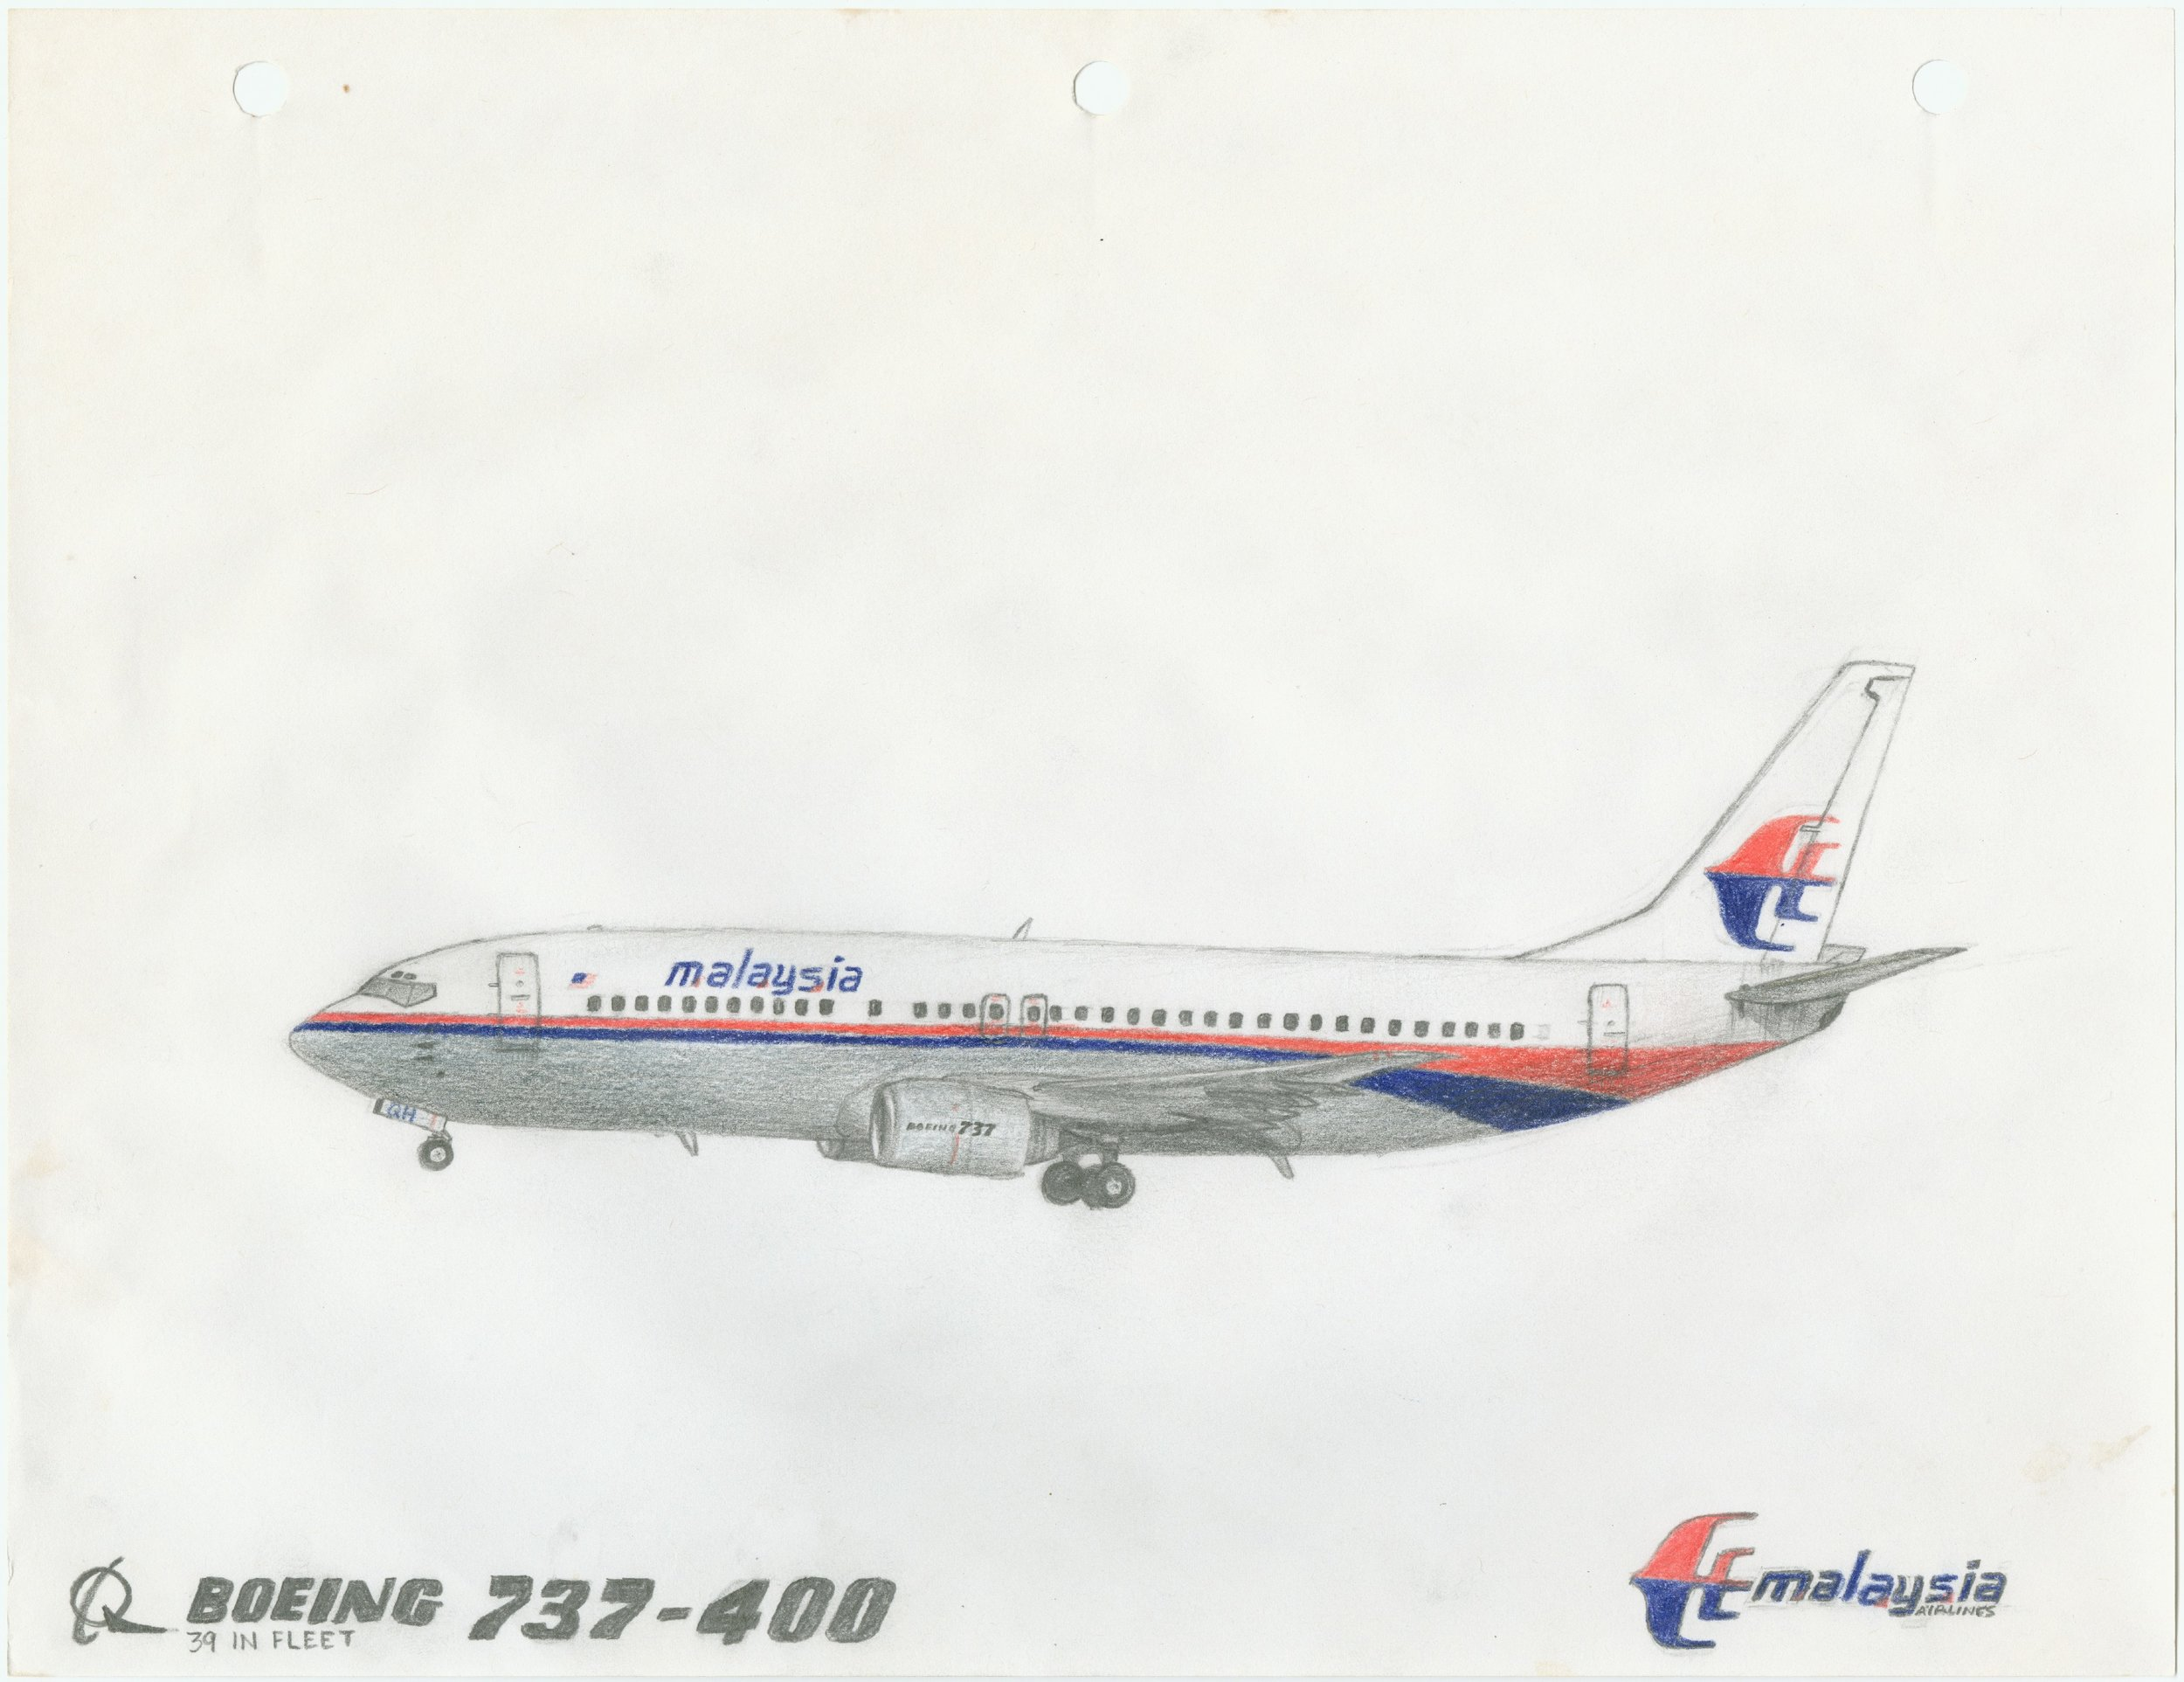 2007 - 006 - Malaysia Airlines planes.pdf0004.jpg